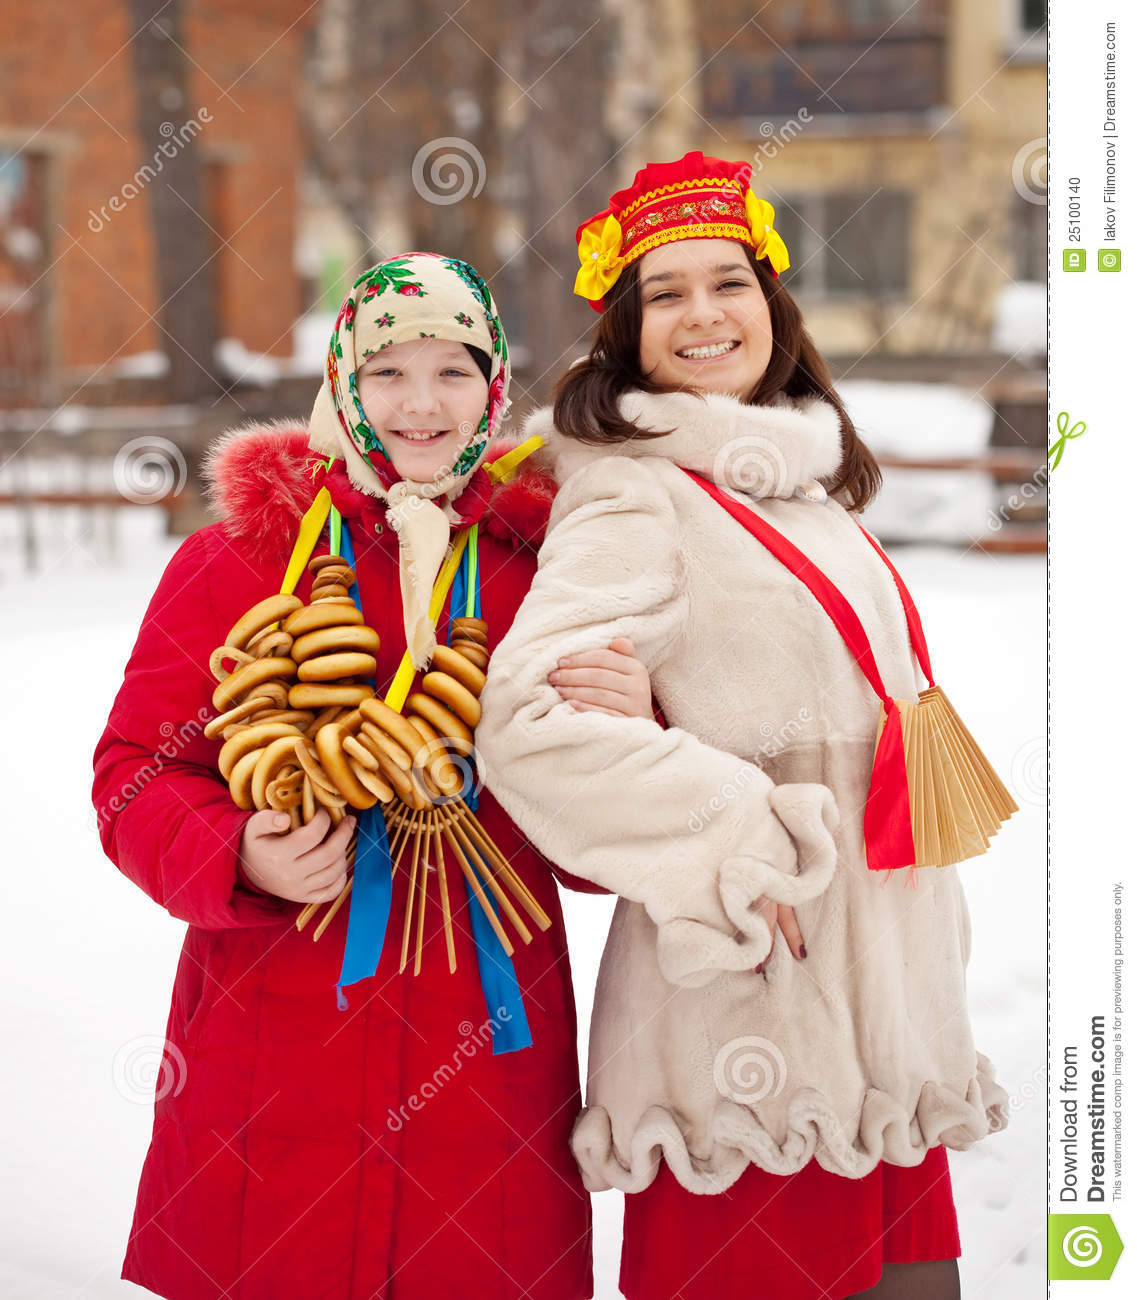 Girls celebrating Maslenitsa festival